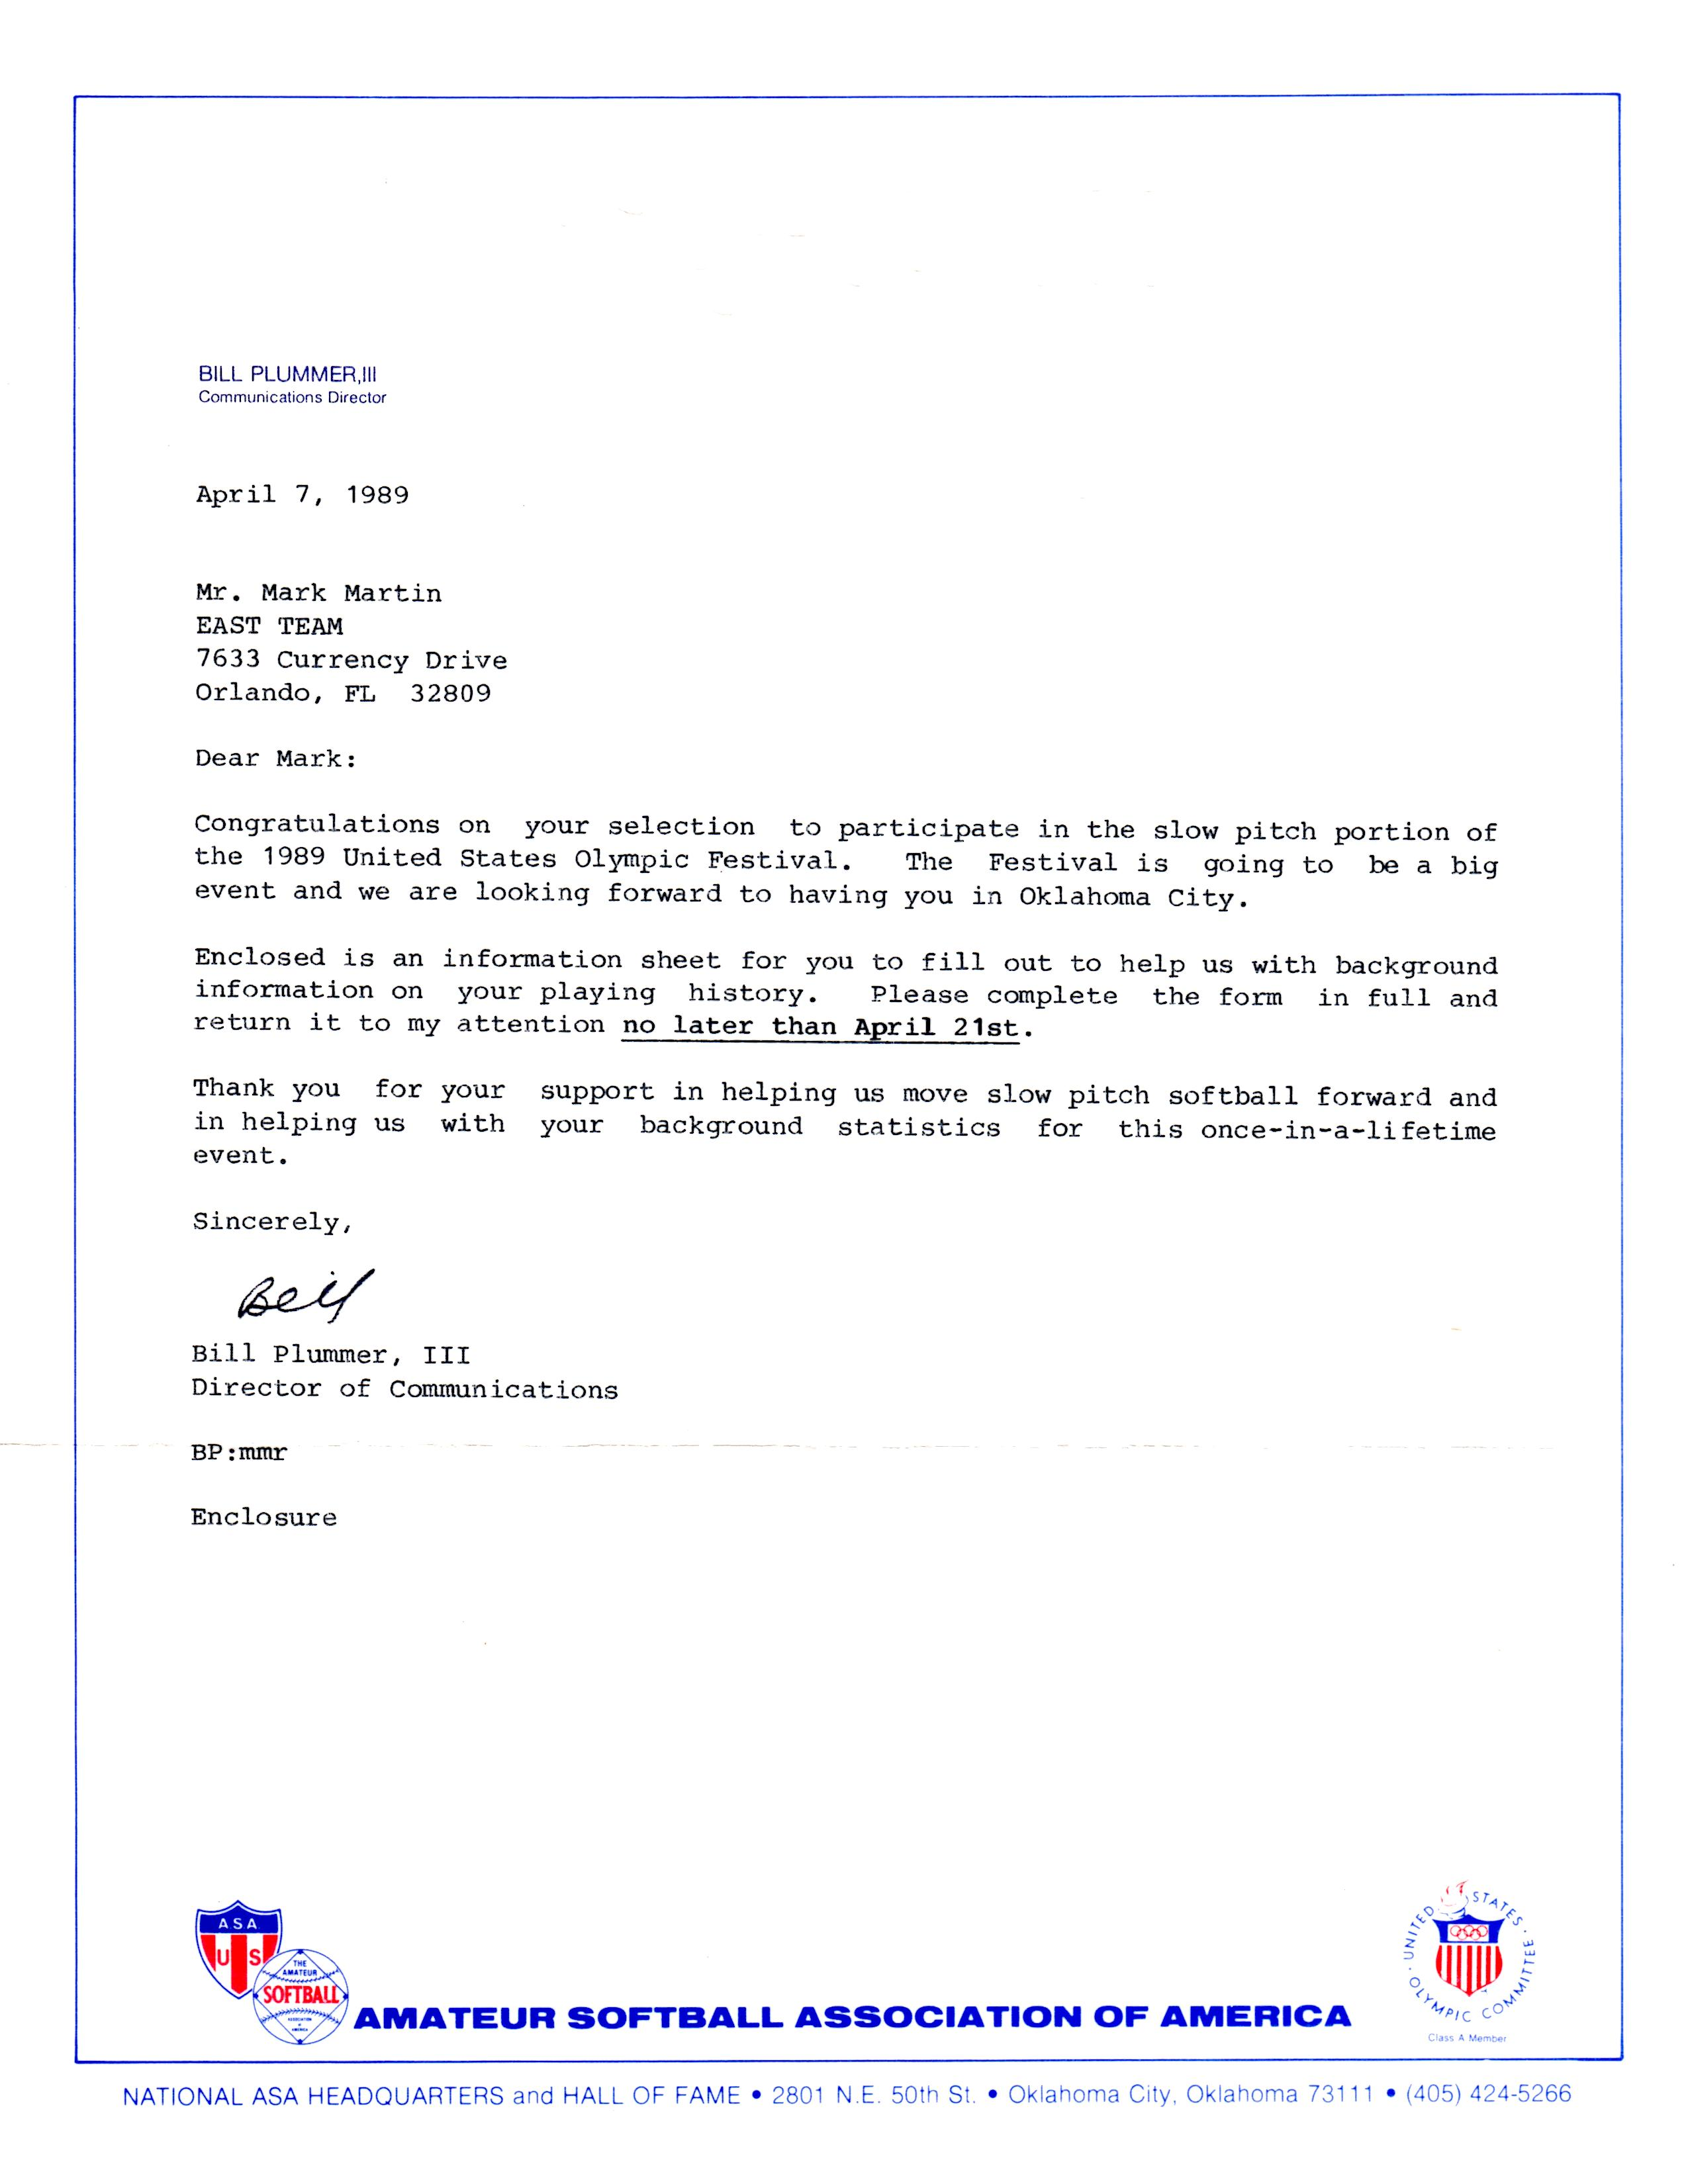 Mark martin softball archives bell corp official invitation letter from asa for the us olympic festival 1989 stopboris Images